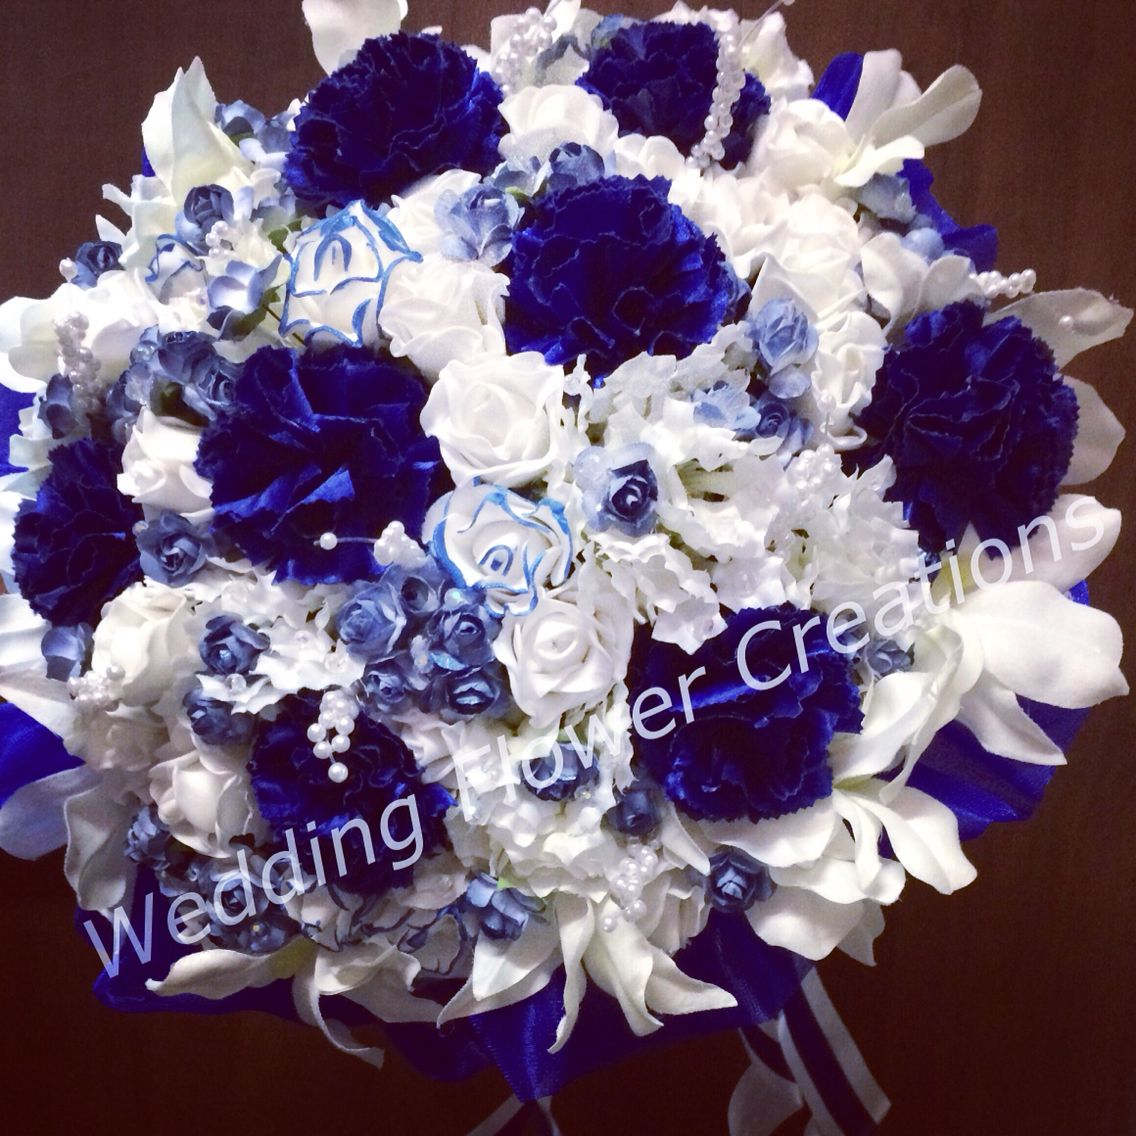 Elaborate Blue Carnations Bridal Bouquet With White Orchids And Roses Carnation Wedding Blue Carnations White Carnation Bouquet